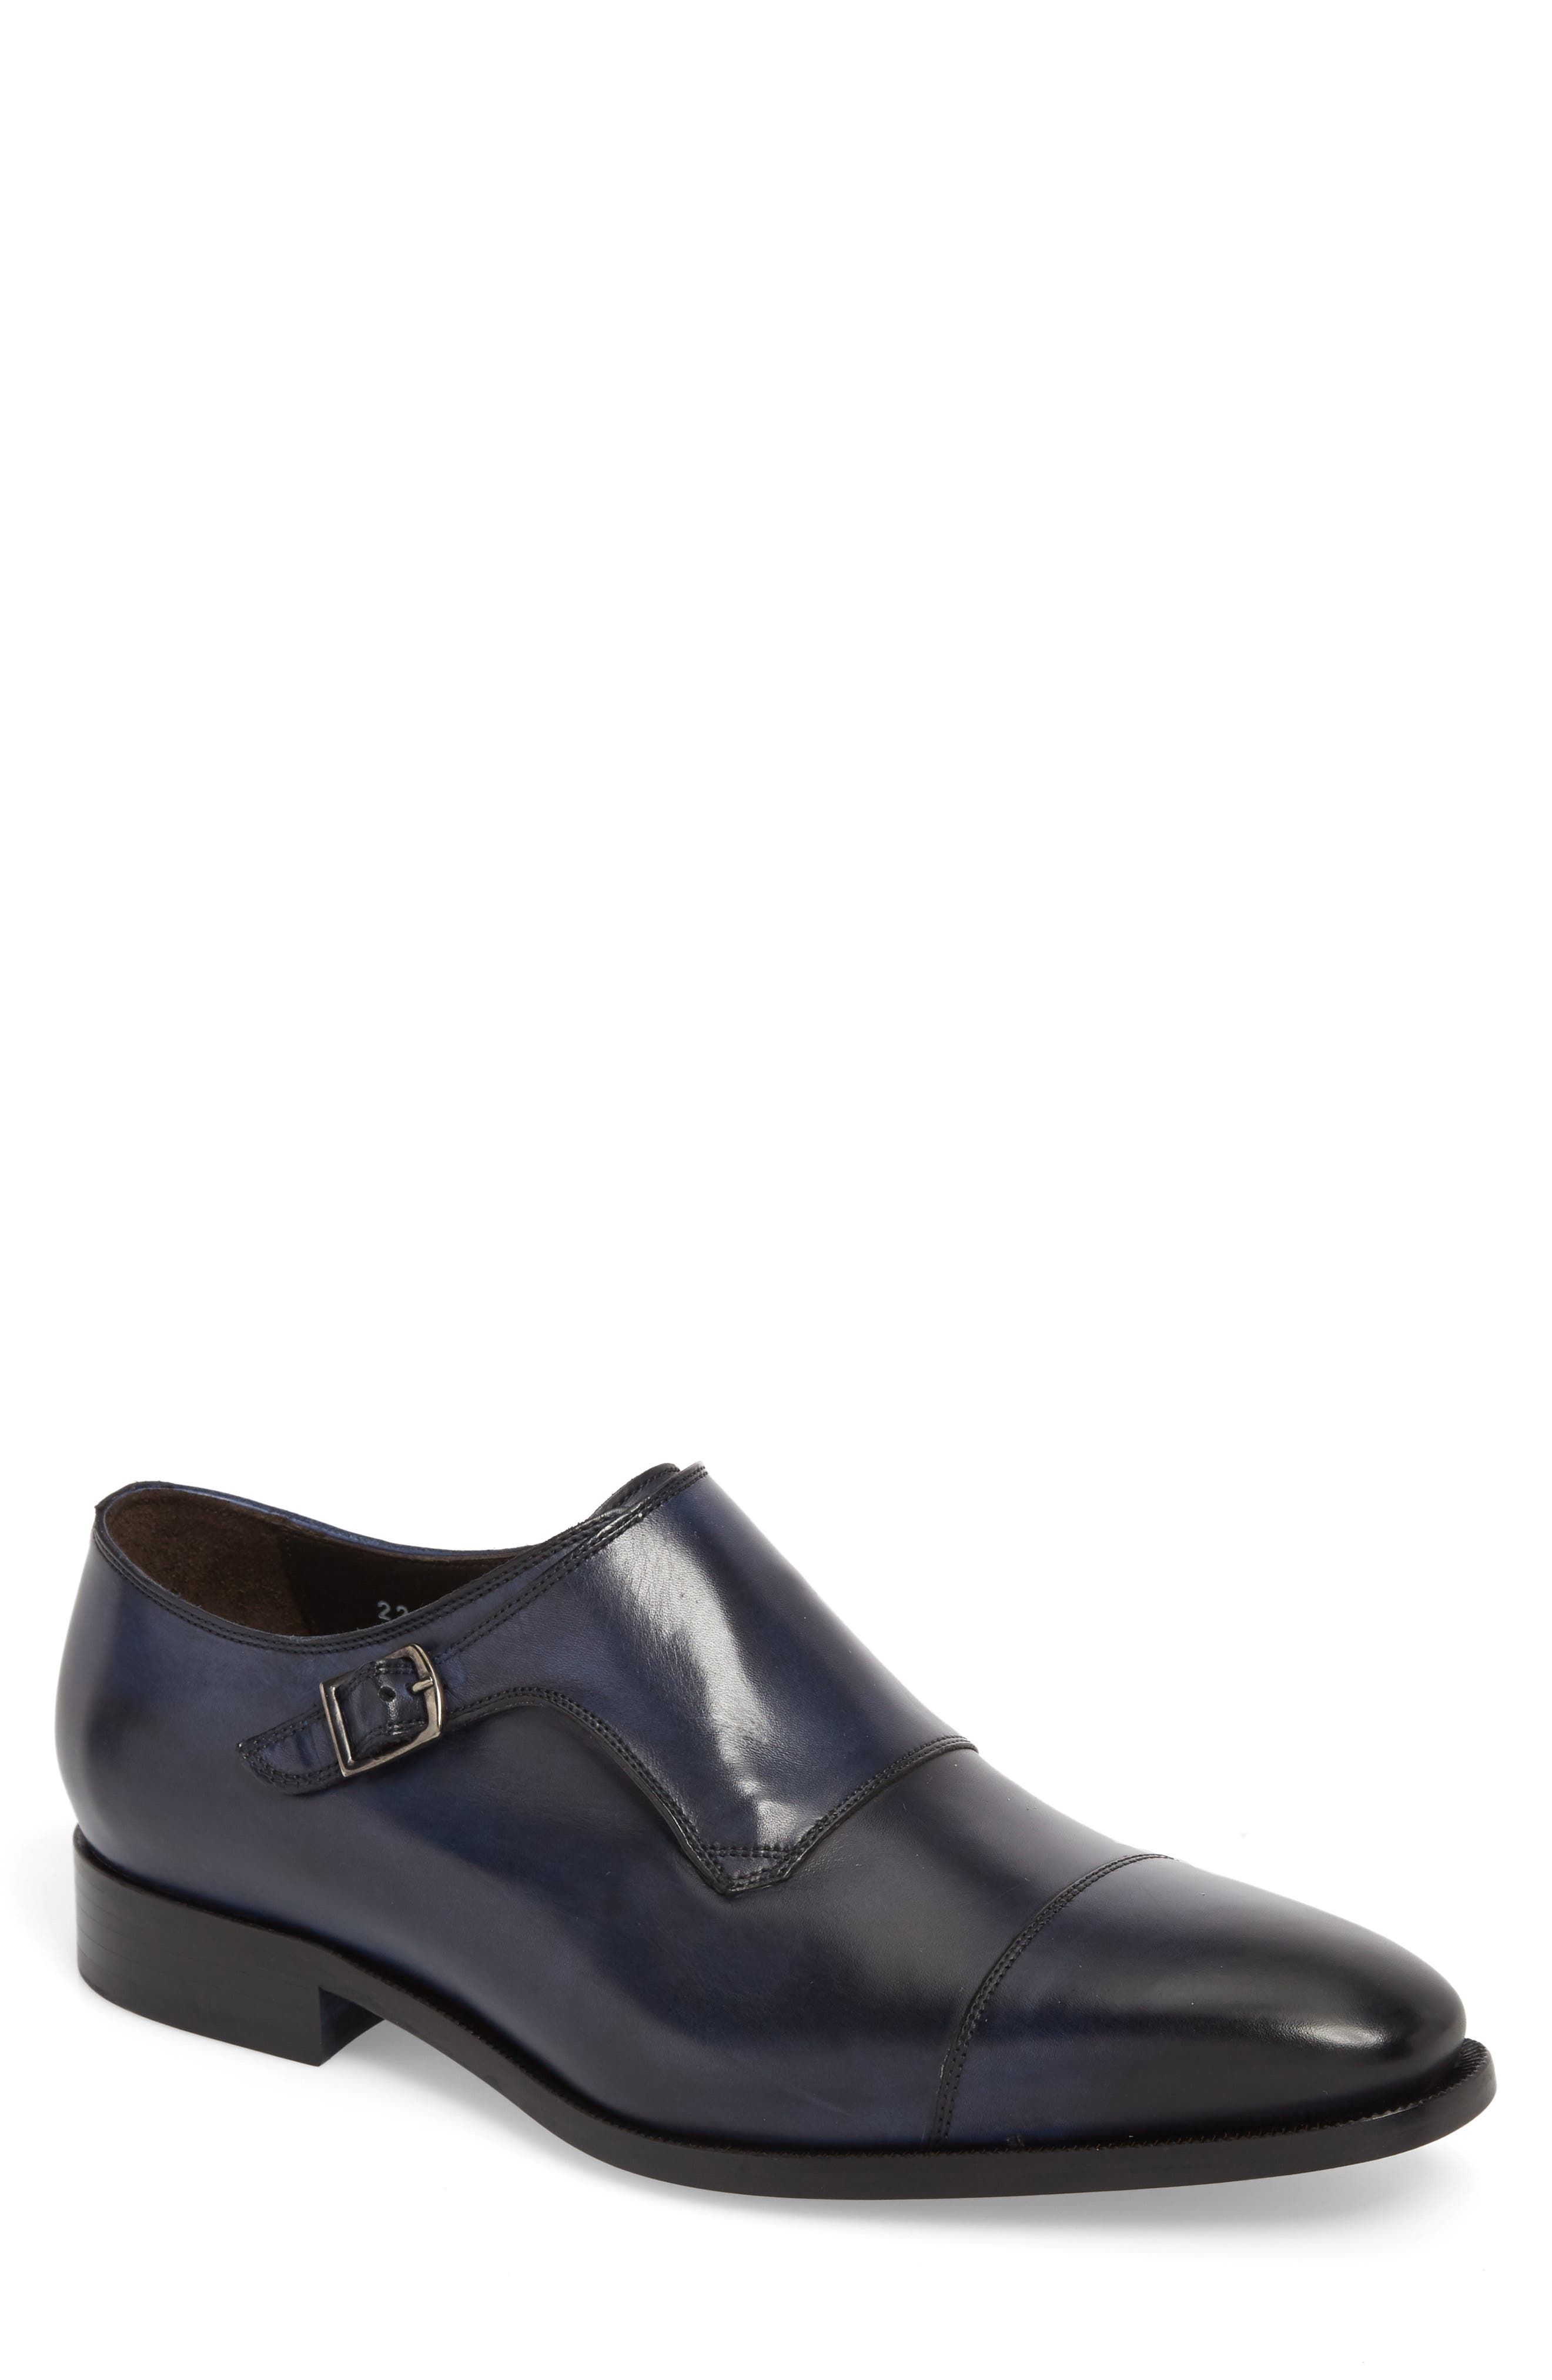 TO BOOT NEW YORK Ludlum Leather Monk Strap in Blue Leather